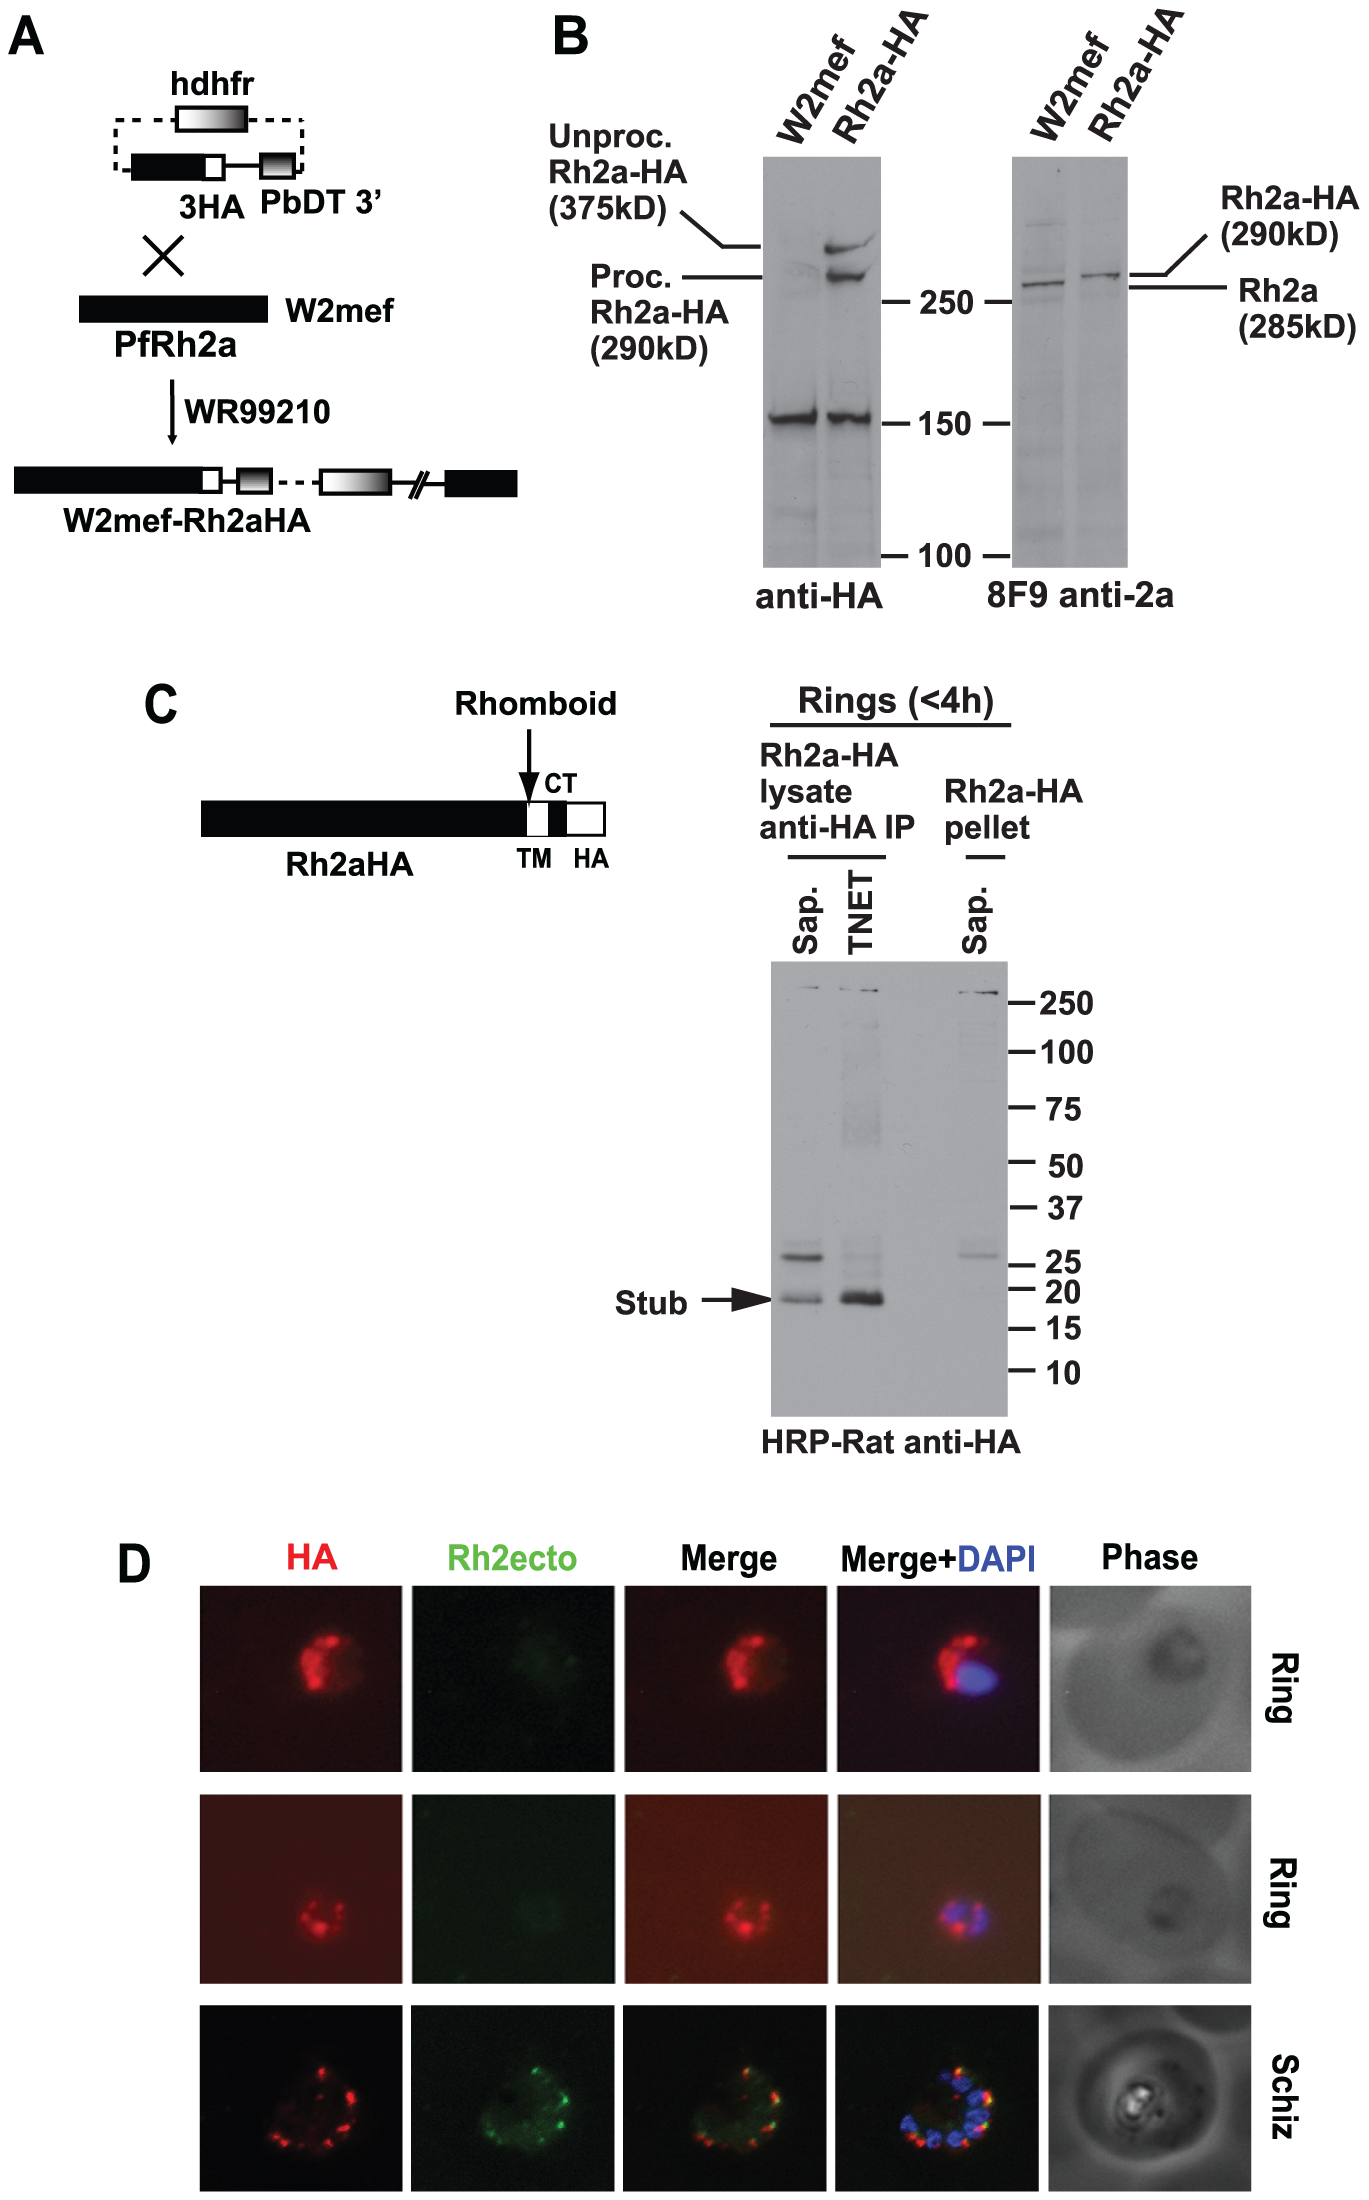 C-terminal tagging of the PfRh2a protein in <i>P. falciparum</i> by transfection.